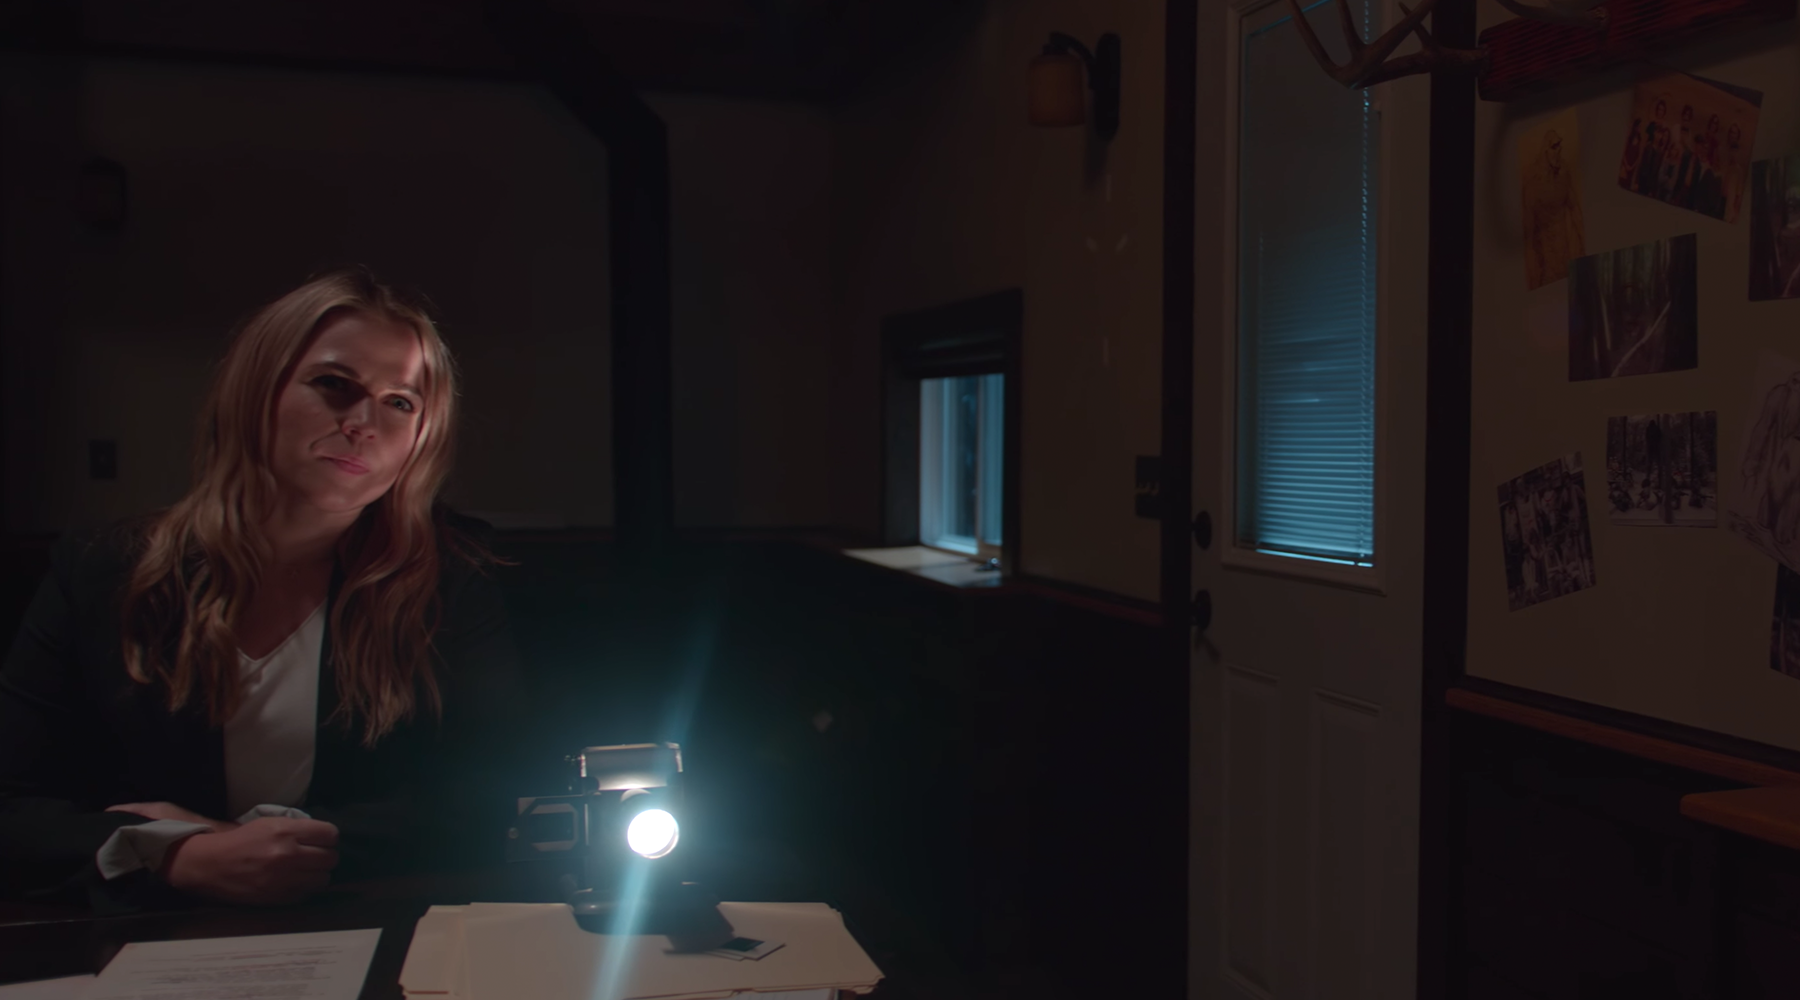 Interior Lighting for Horror Film